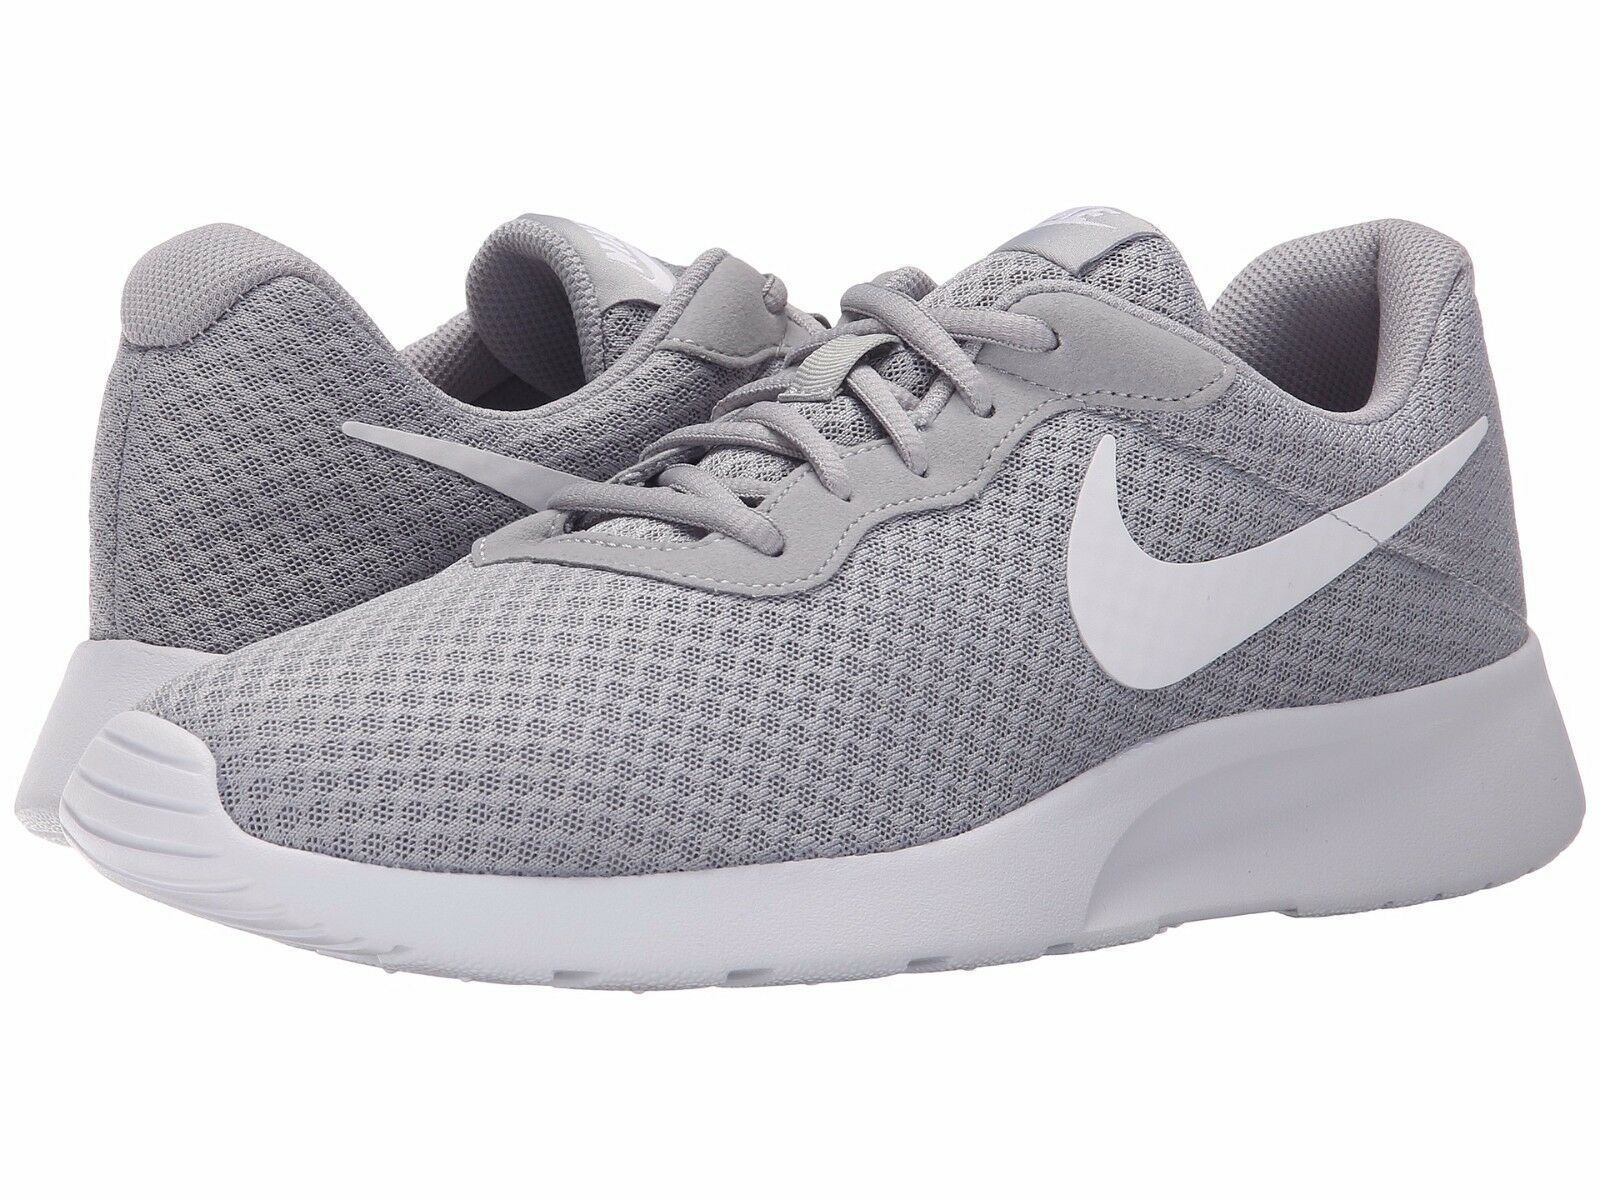 buy popular 6e57a 9099e ... buy nib mens nike sneakers tanjun running athletic shoes sneakers nike  kaishi rosche gray white 33d76a